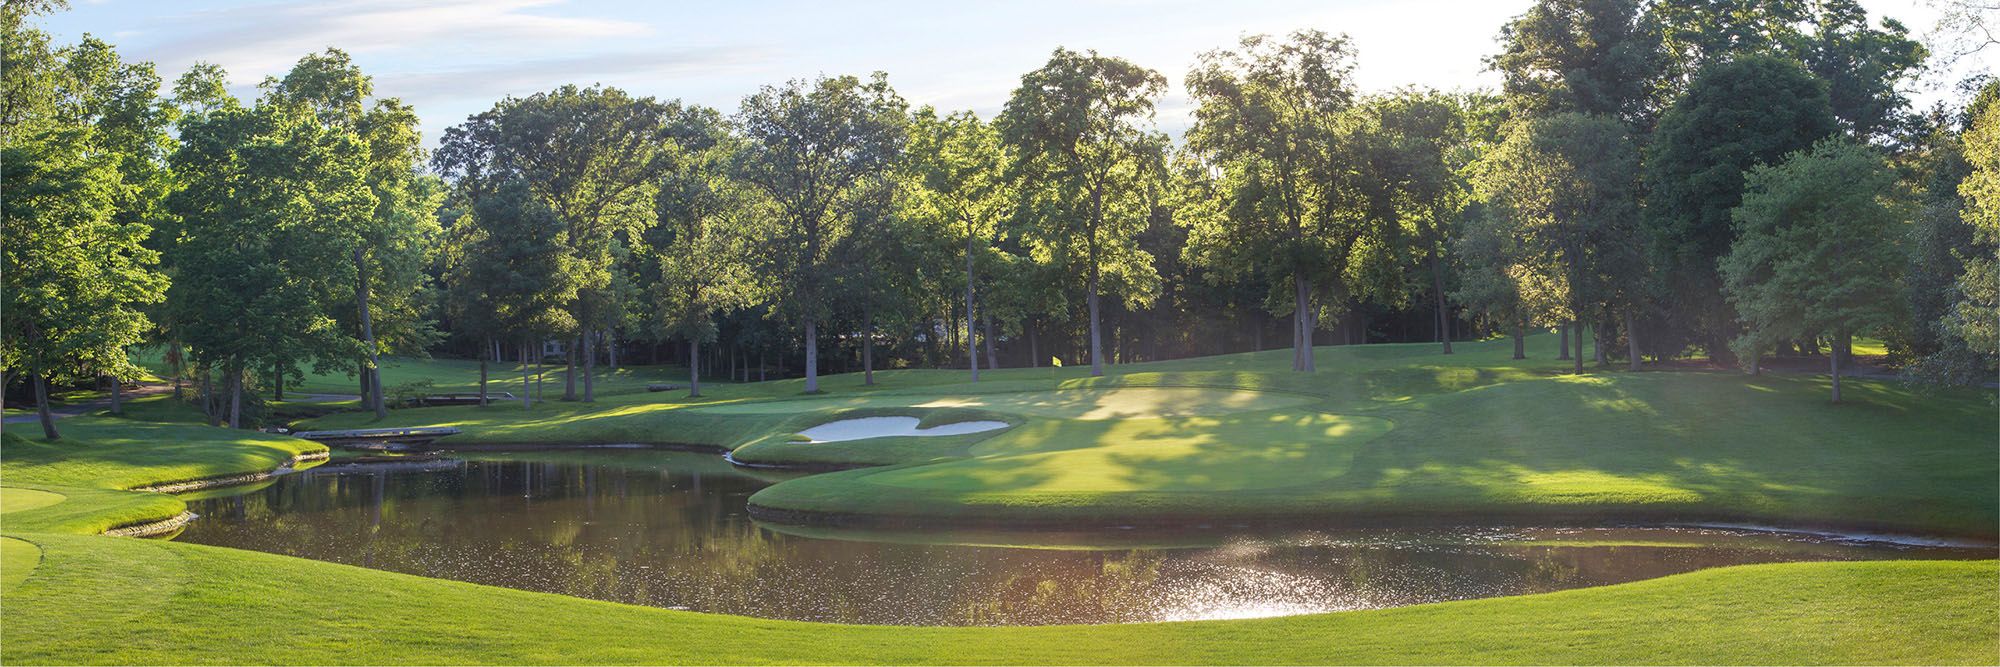 Golf Course Image - Muirfield Village No. 6